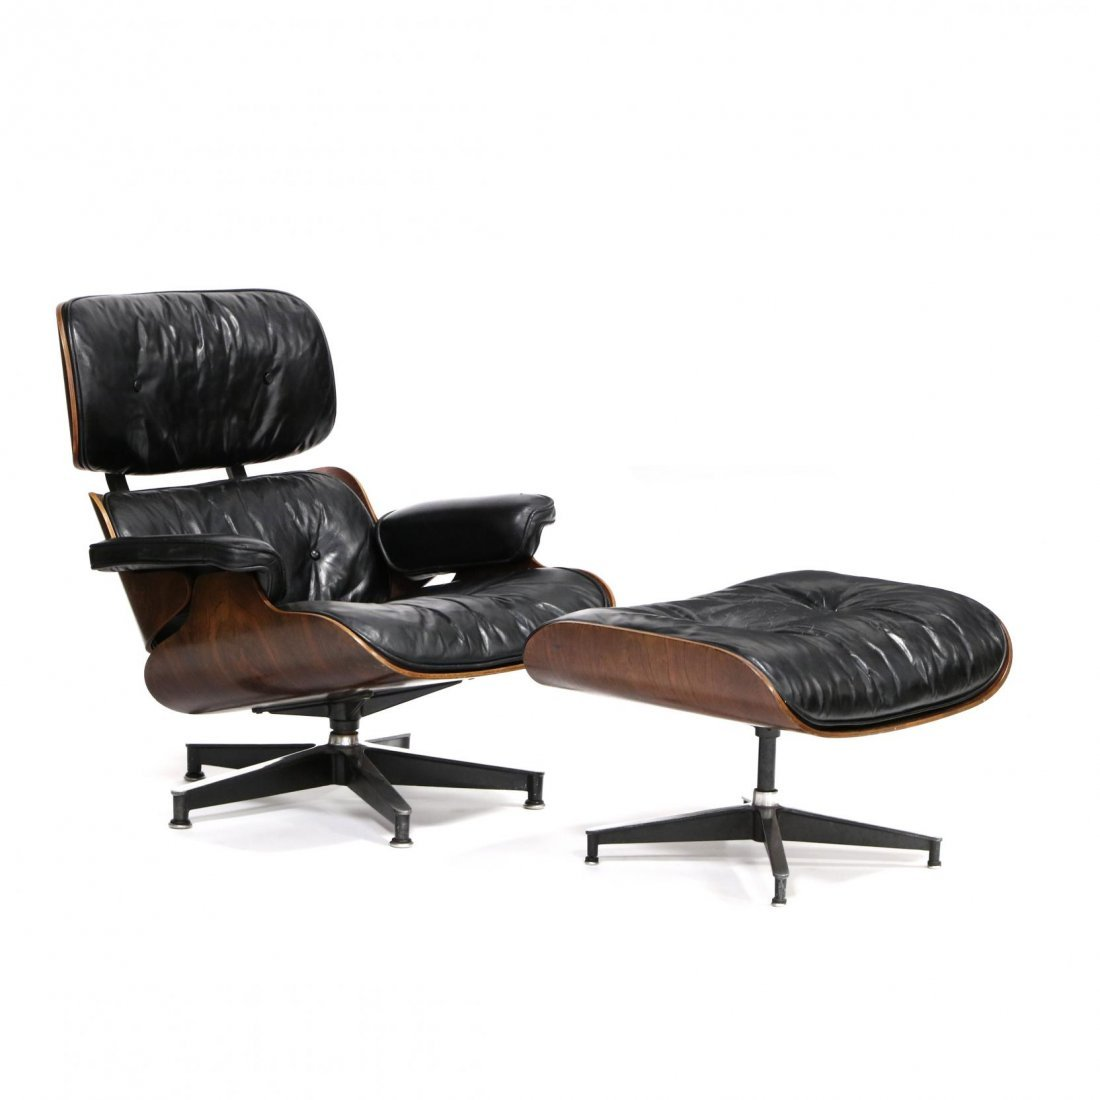 Charles Eames, 670/671 Vintage Lounge Chair and Ottoman